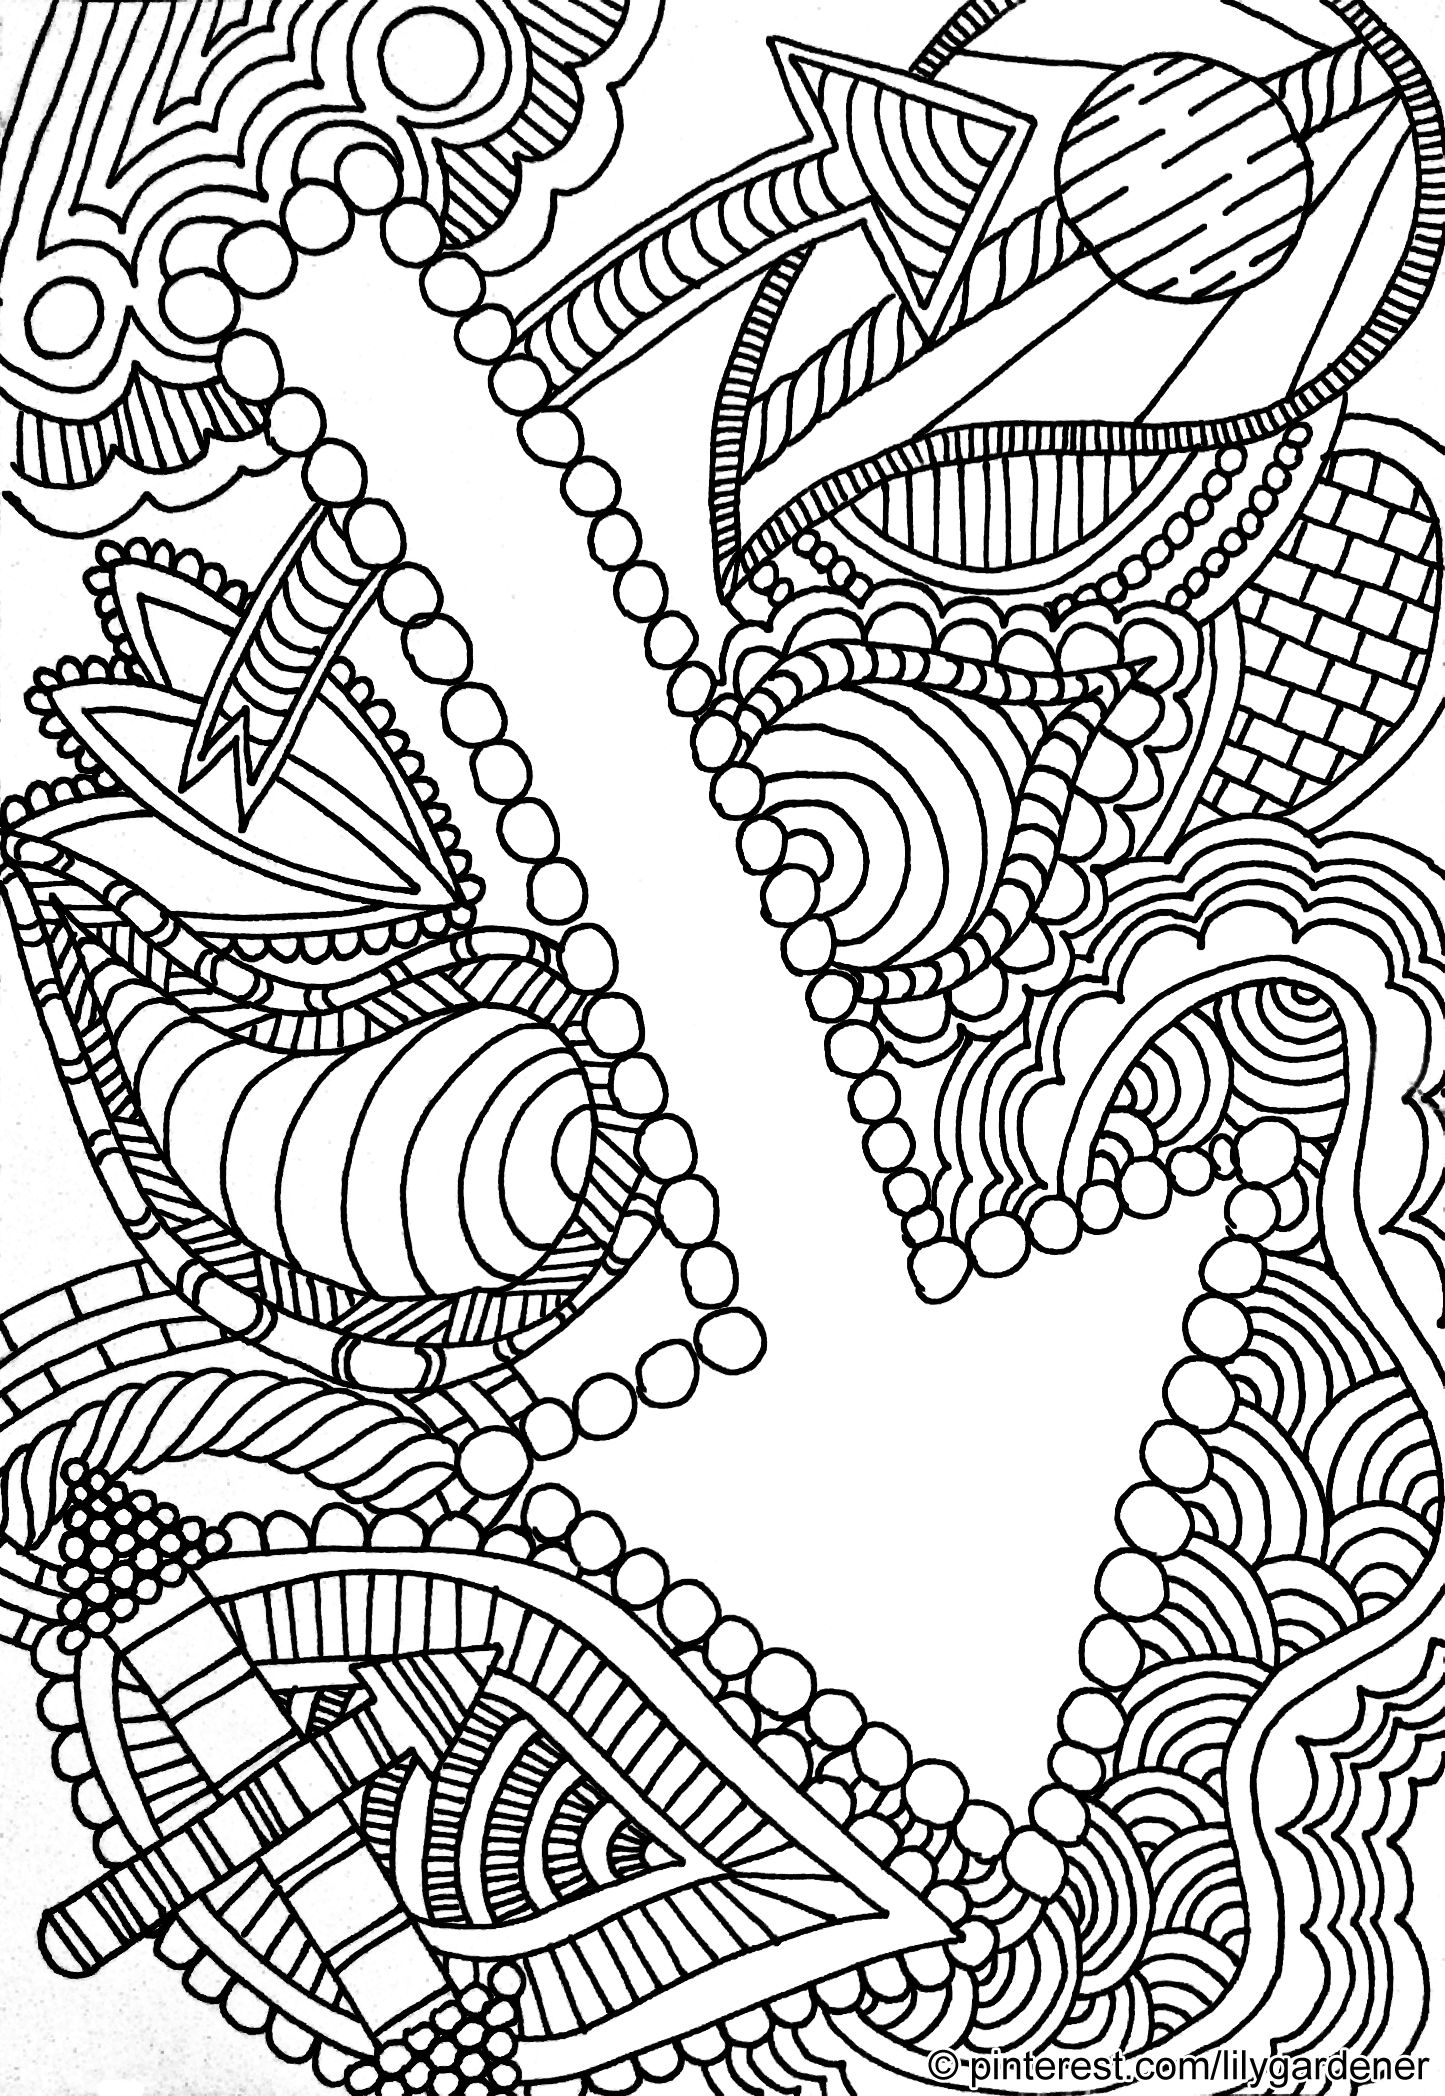 pattern coloring pages for adults printable hard pattern coloring pages coloring home for pages pattern adults coloring